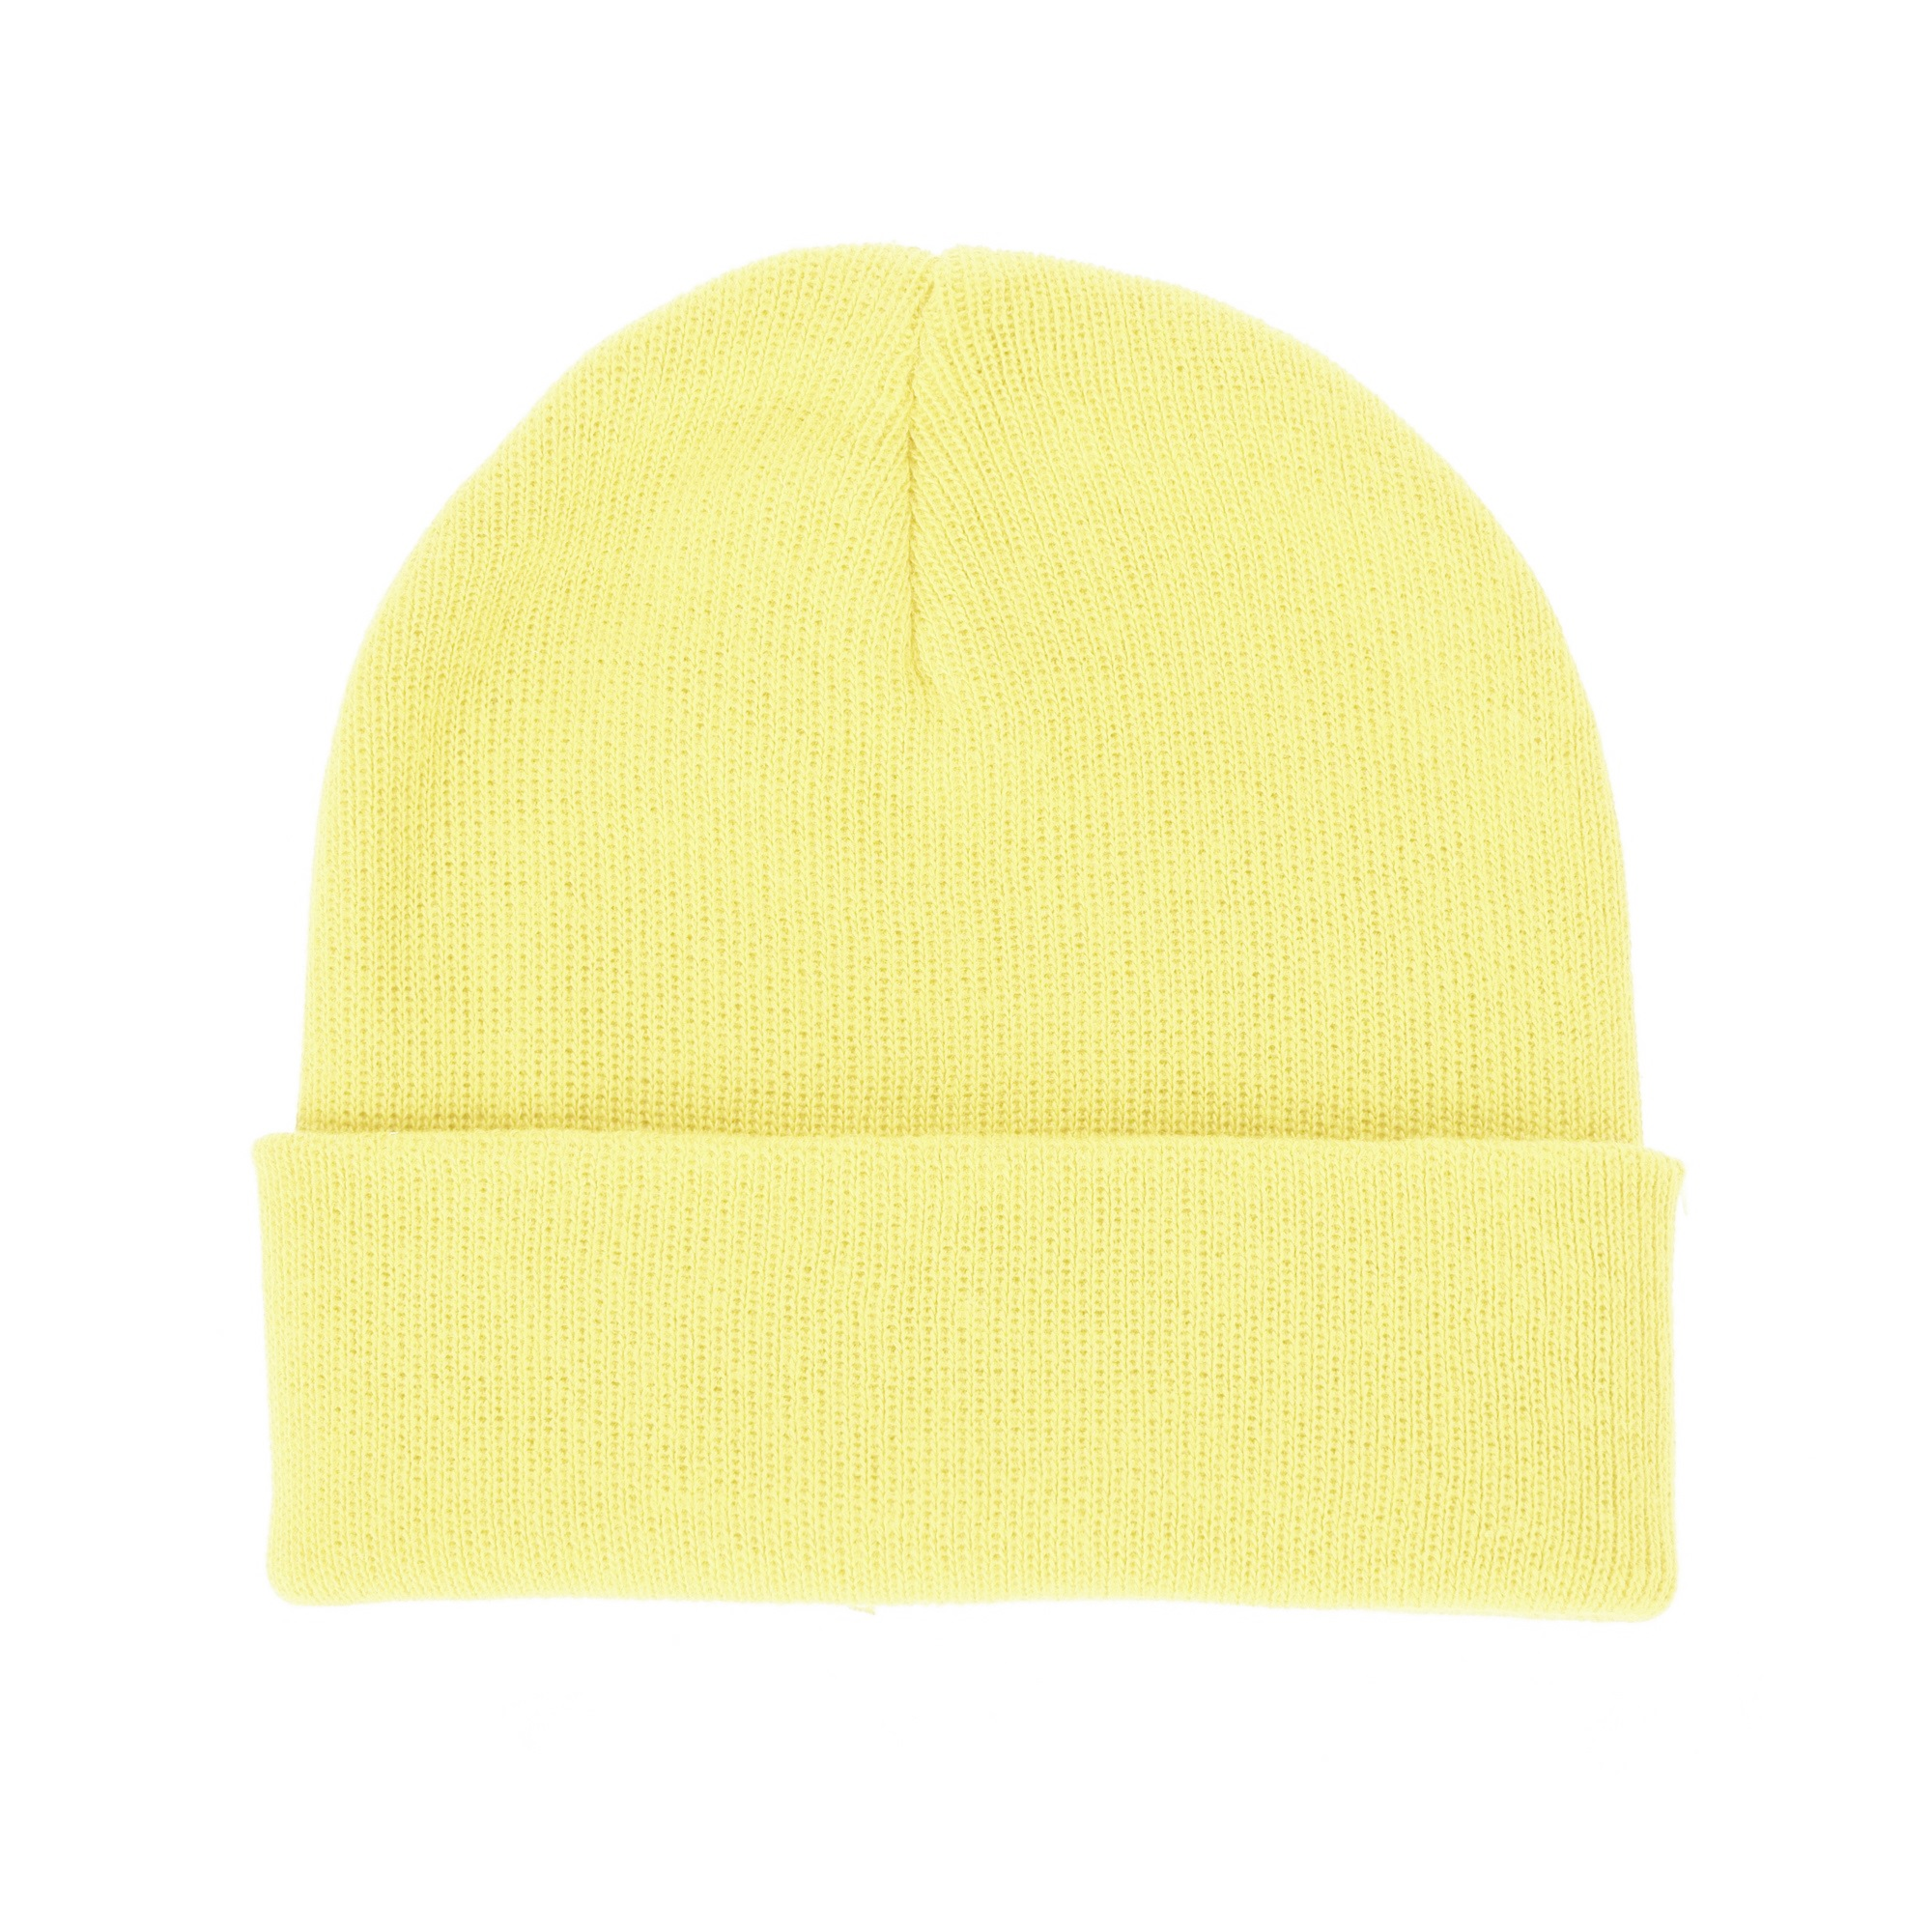 WITHMOONS - WITHMOONS Infant Baby Plain Winter Beanie Hat Toddler Skull Cap  CCJ875 (Yellow) - Walmart.com 48f0eeb0c92